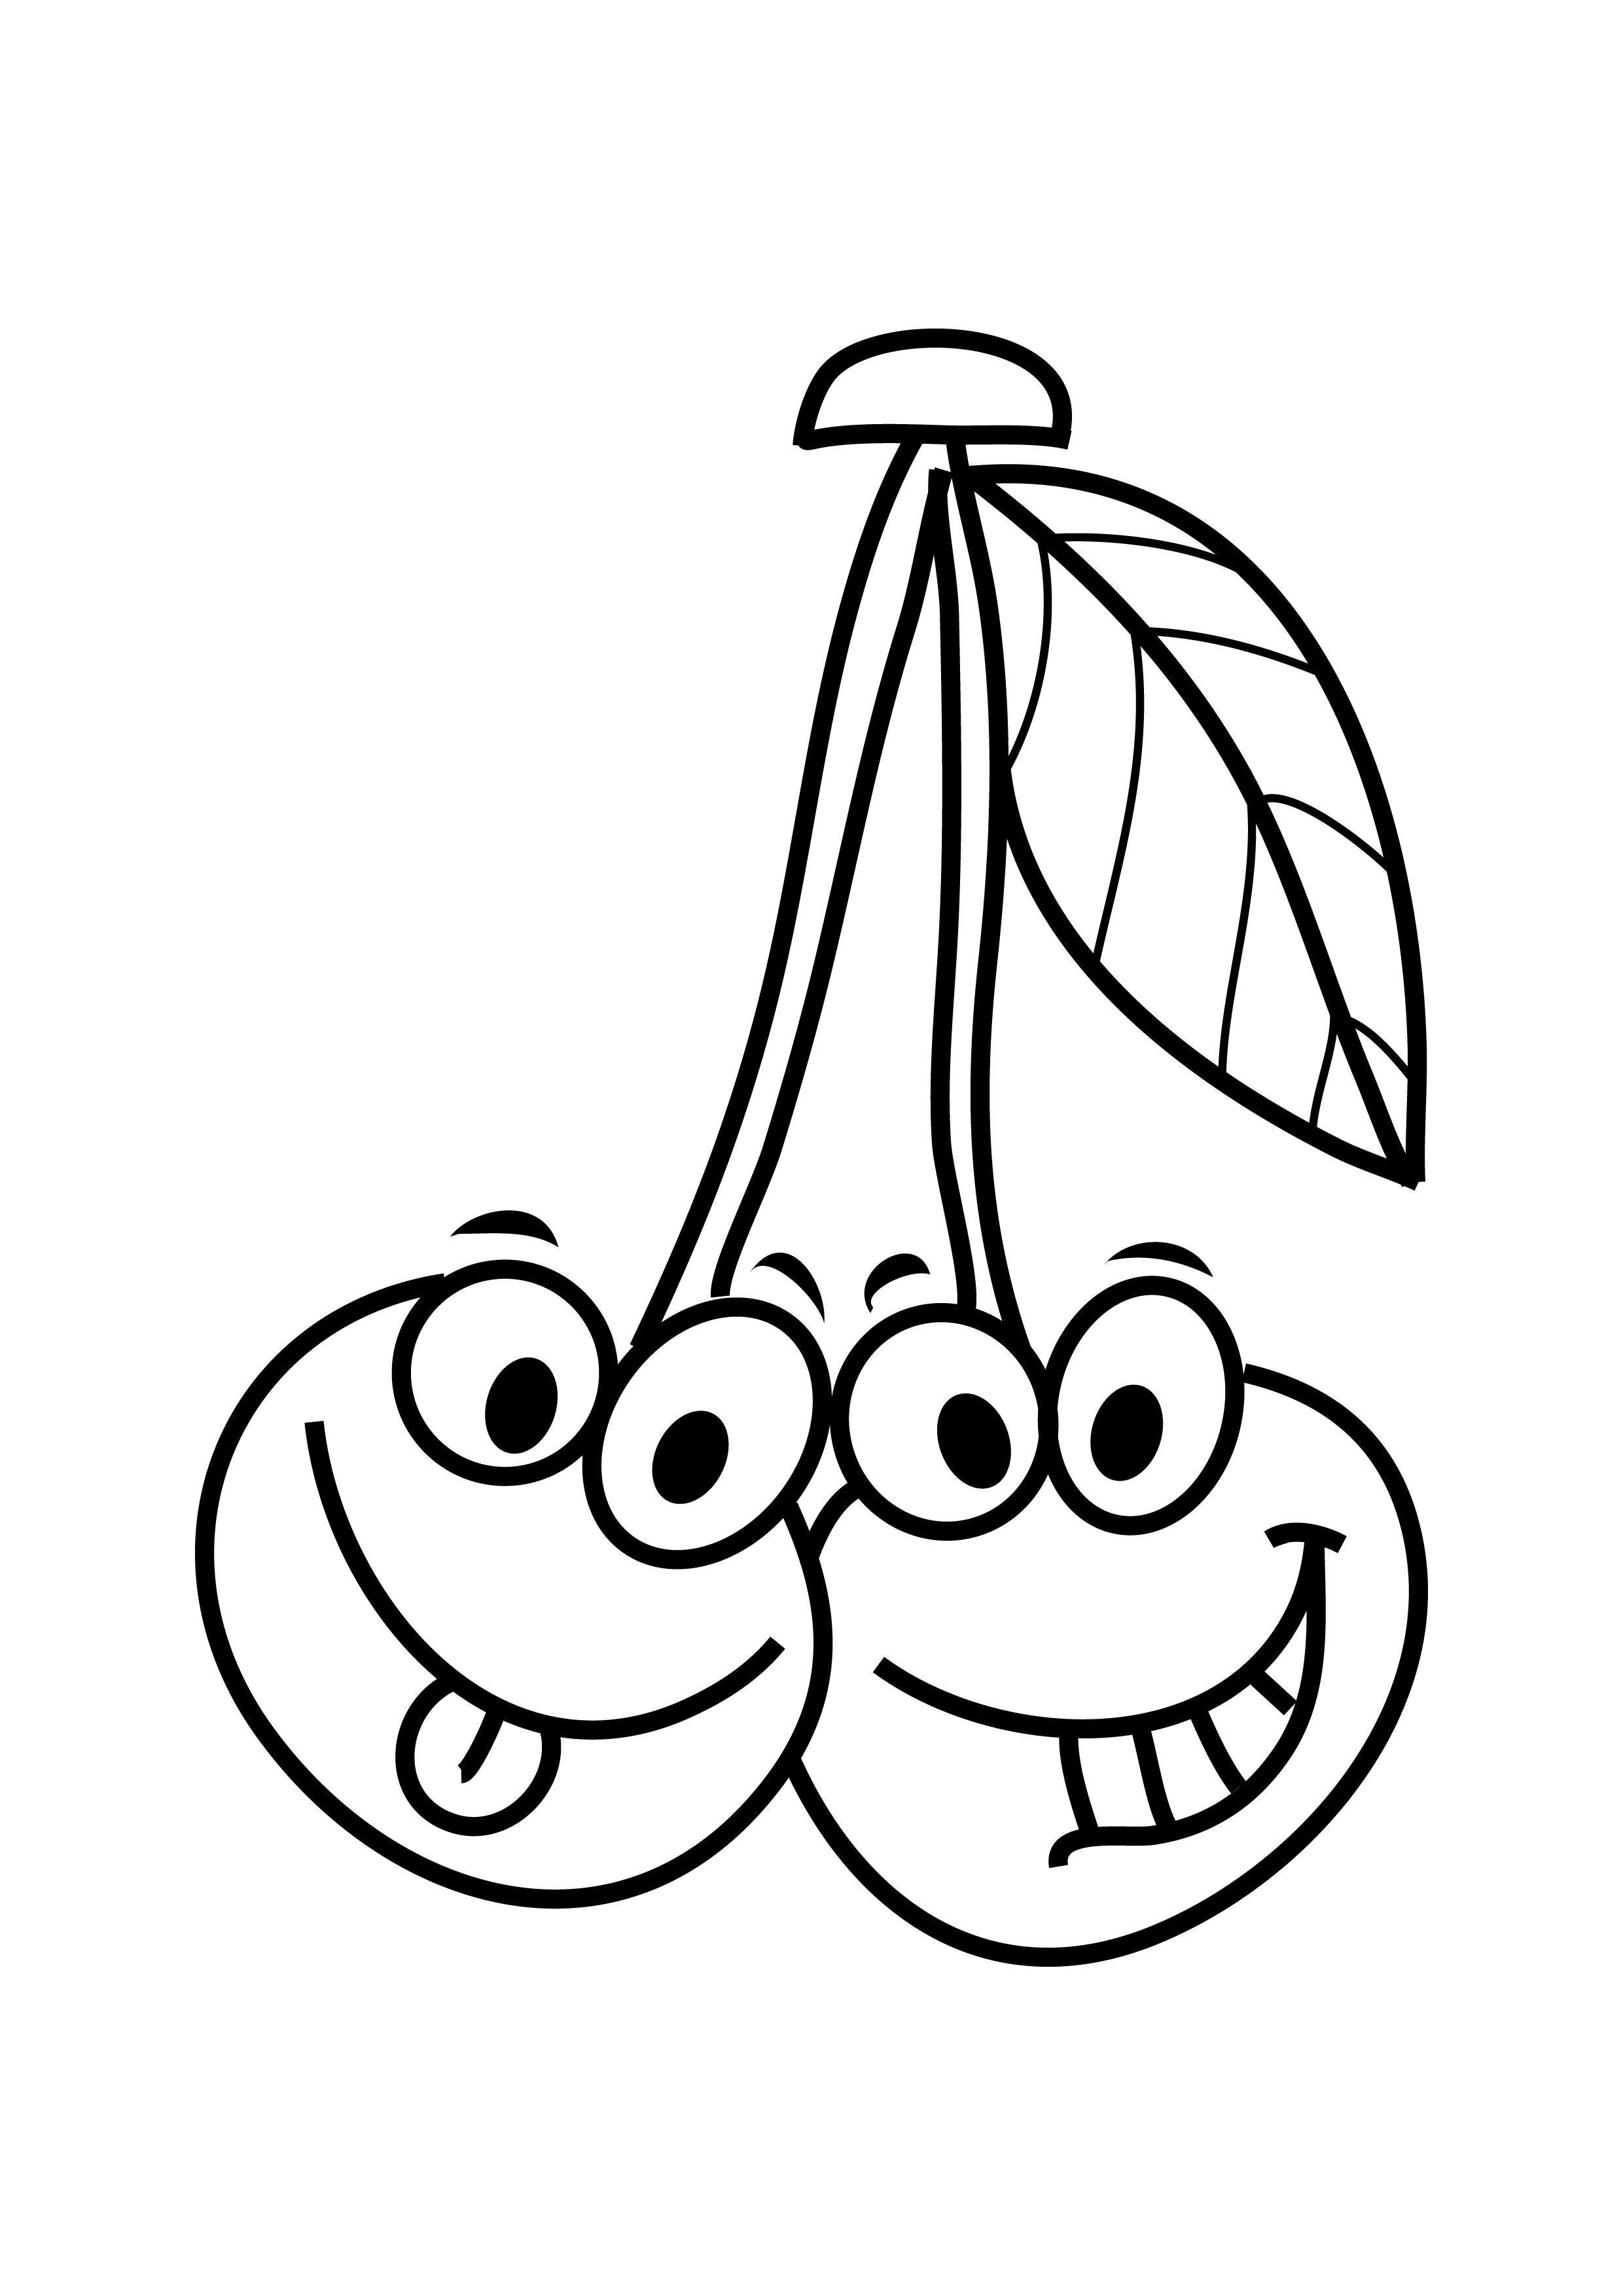 Smart Fruits And Vegetables Coloring Pages Crafts And